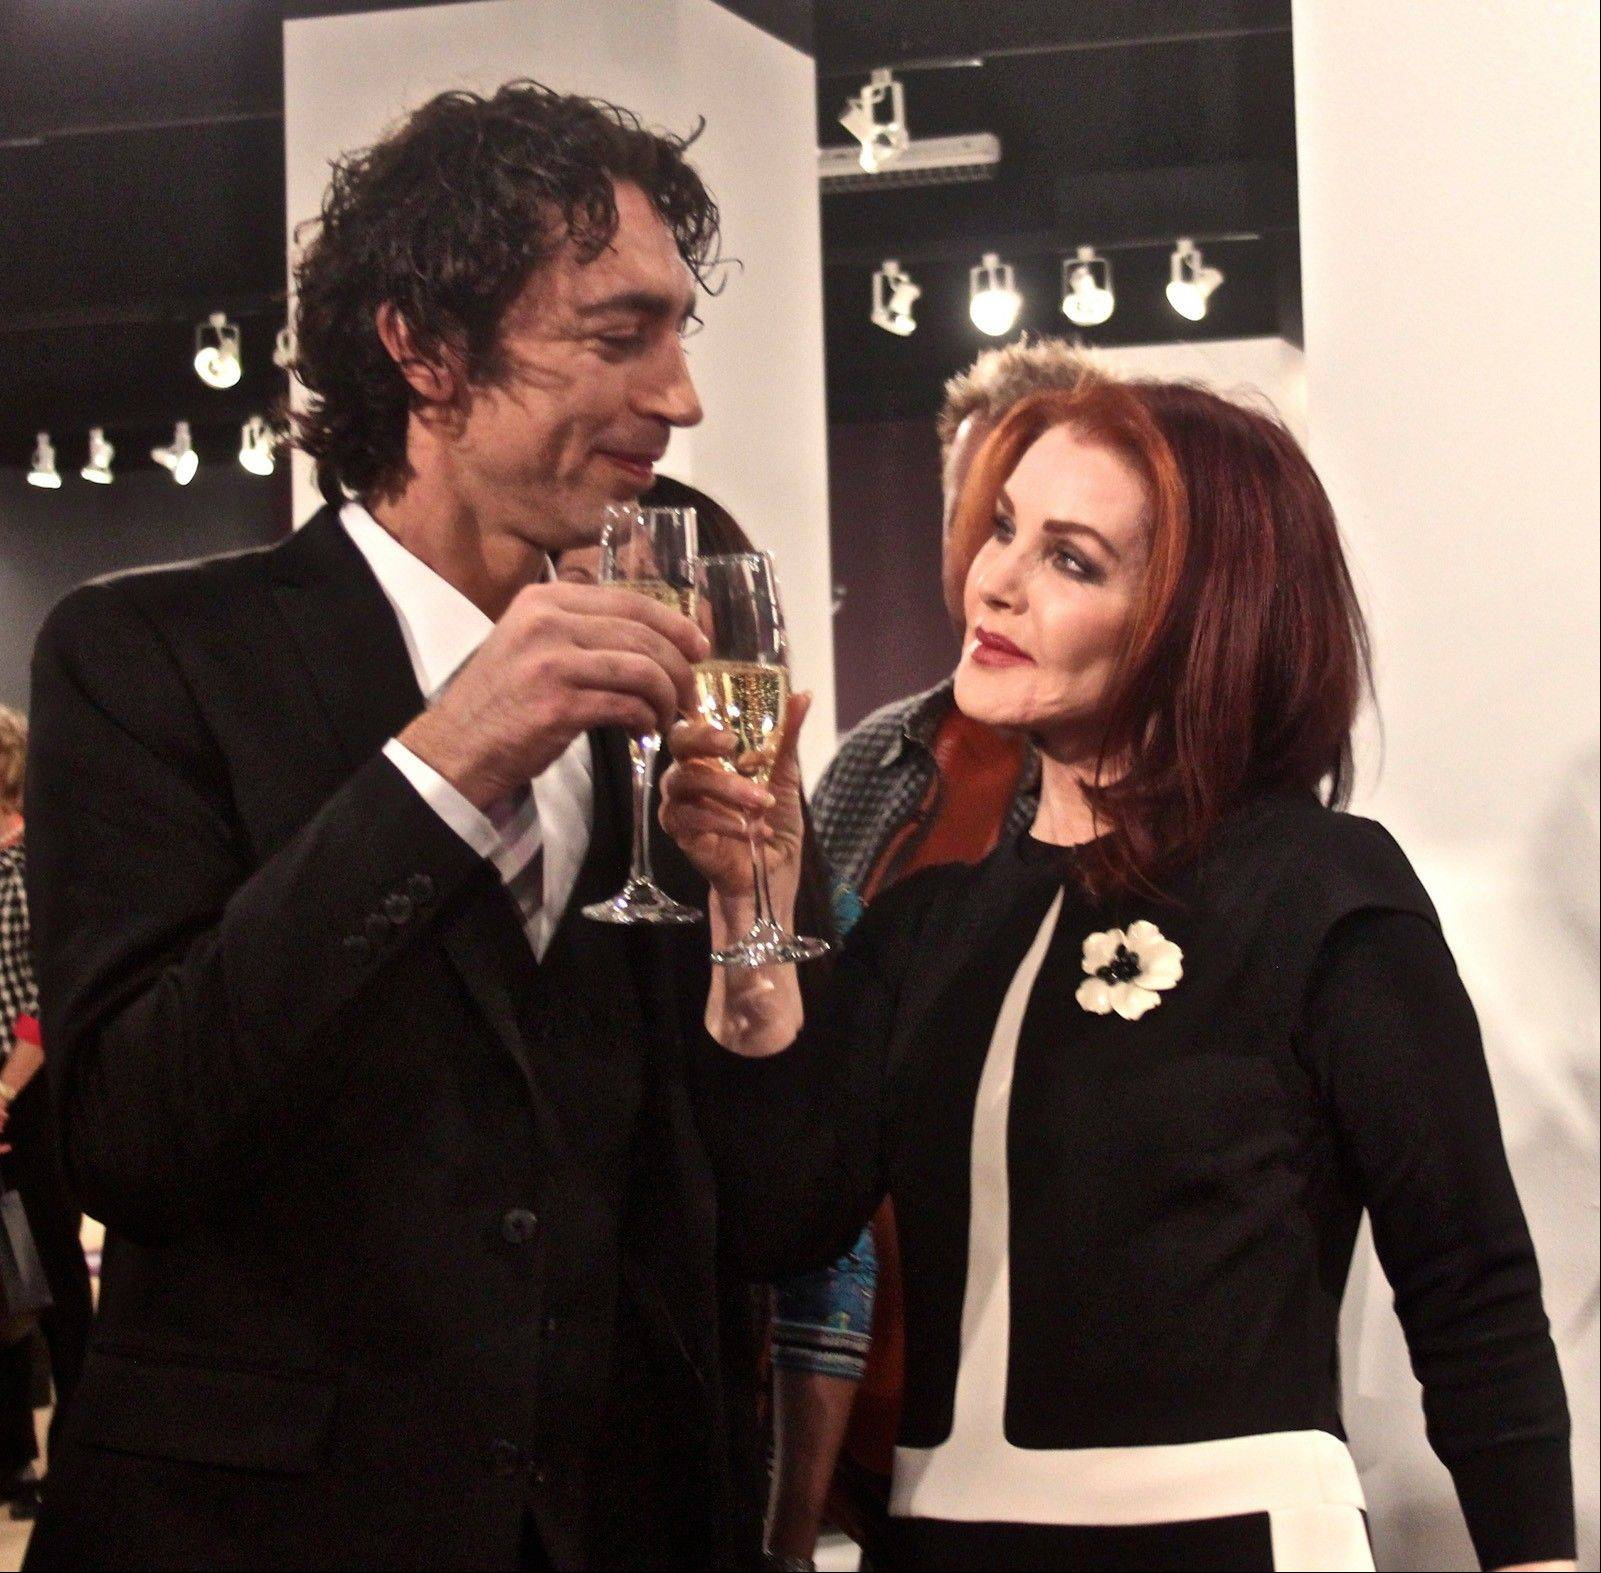 Shlomi Haziza and Priscilla Presley toast her new collection of home furnishings and accessories.